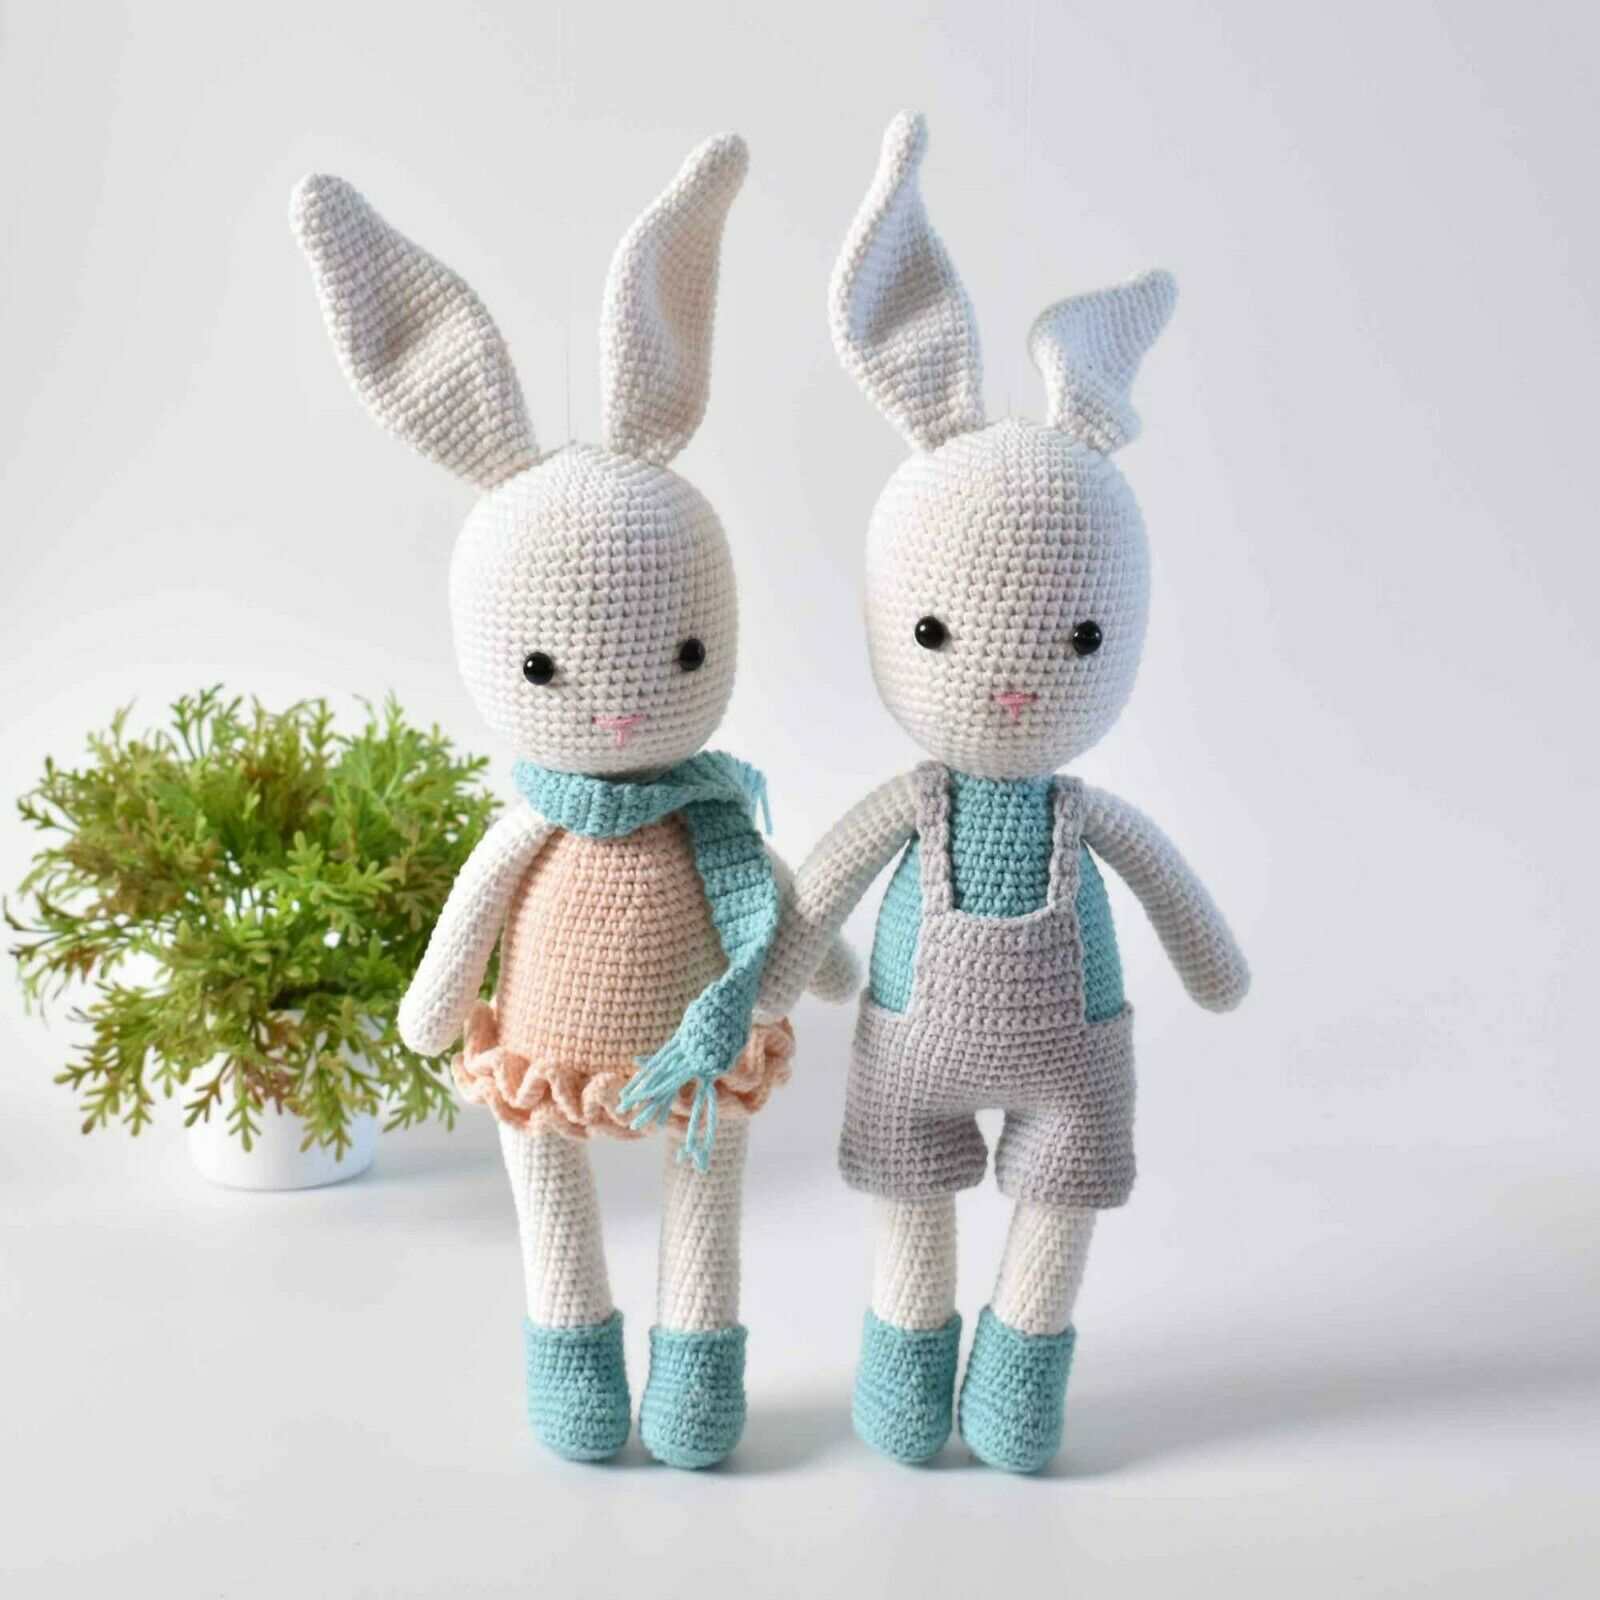 11 Crochet Bunny Patterns -Easter Fun - A More Crafty Life | 1600x1600